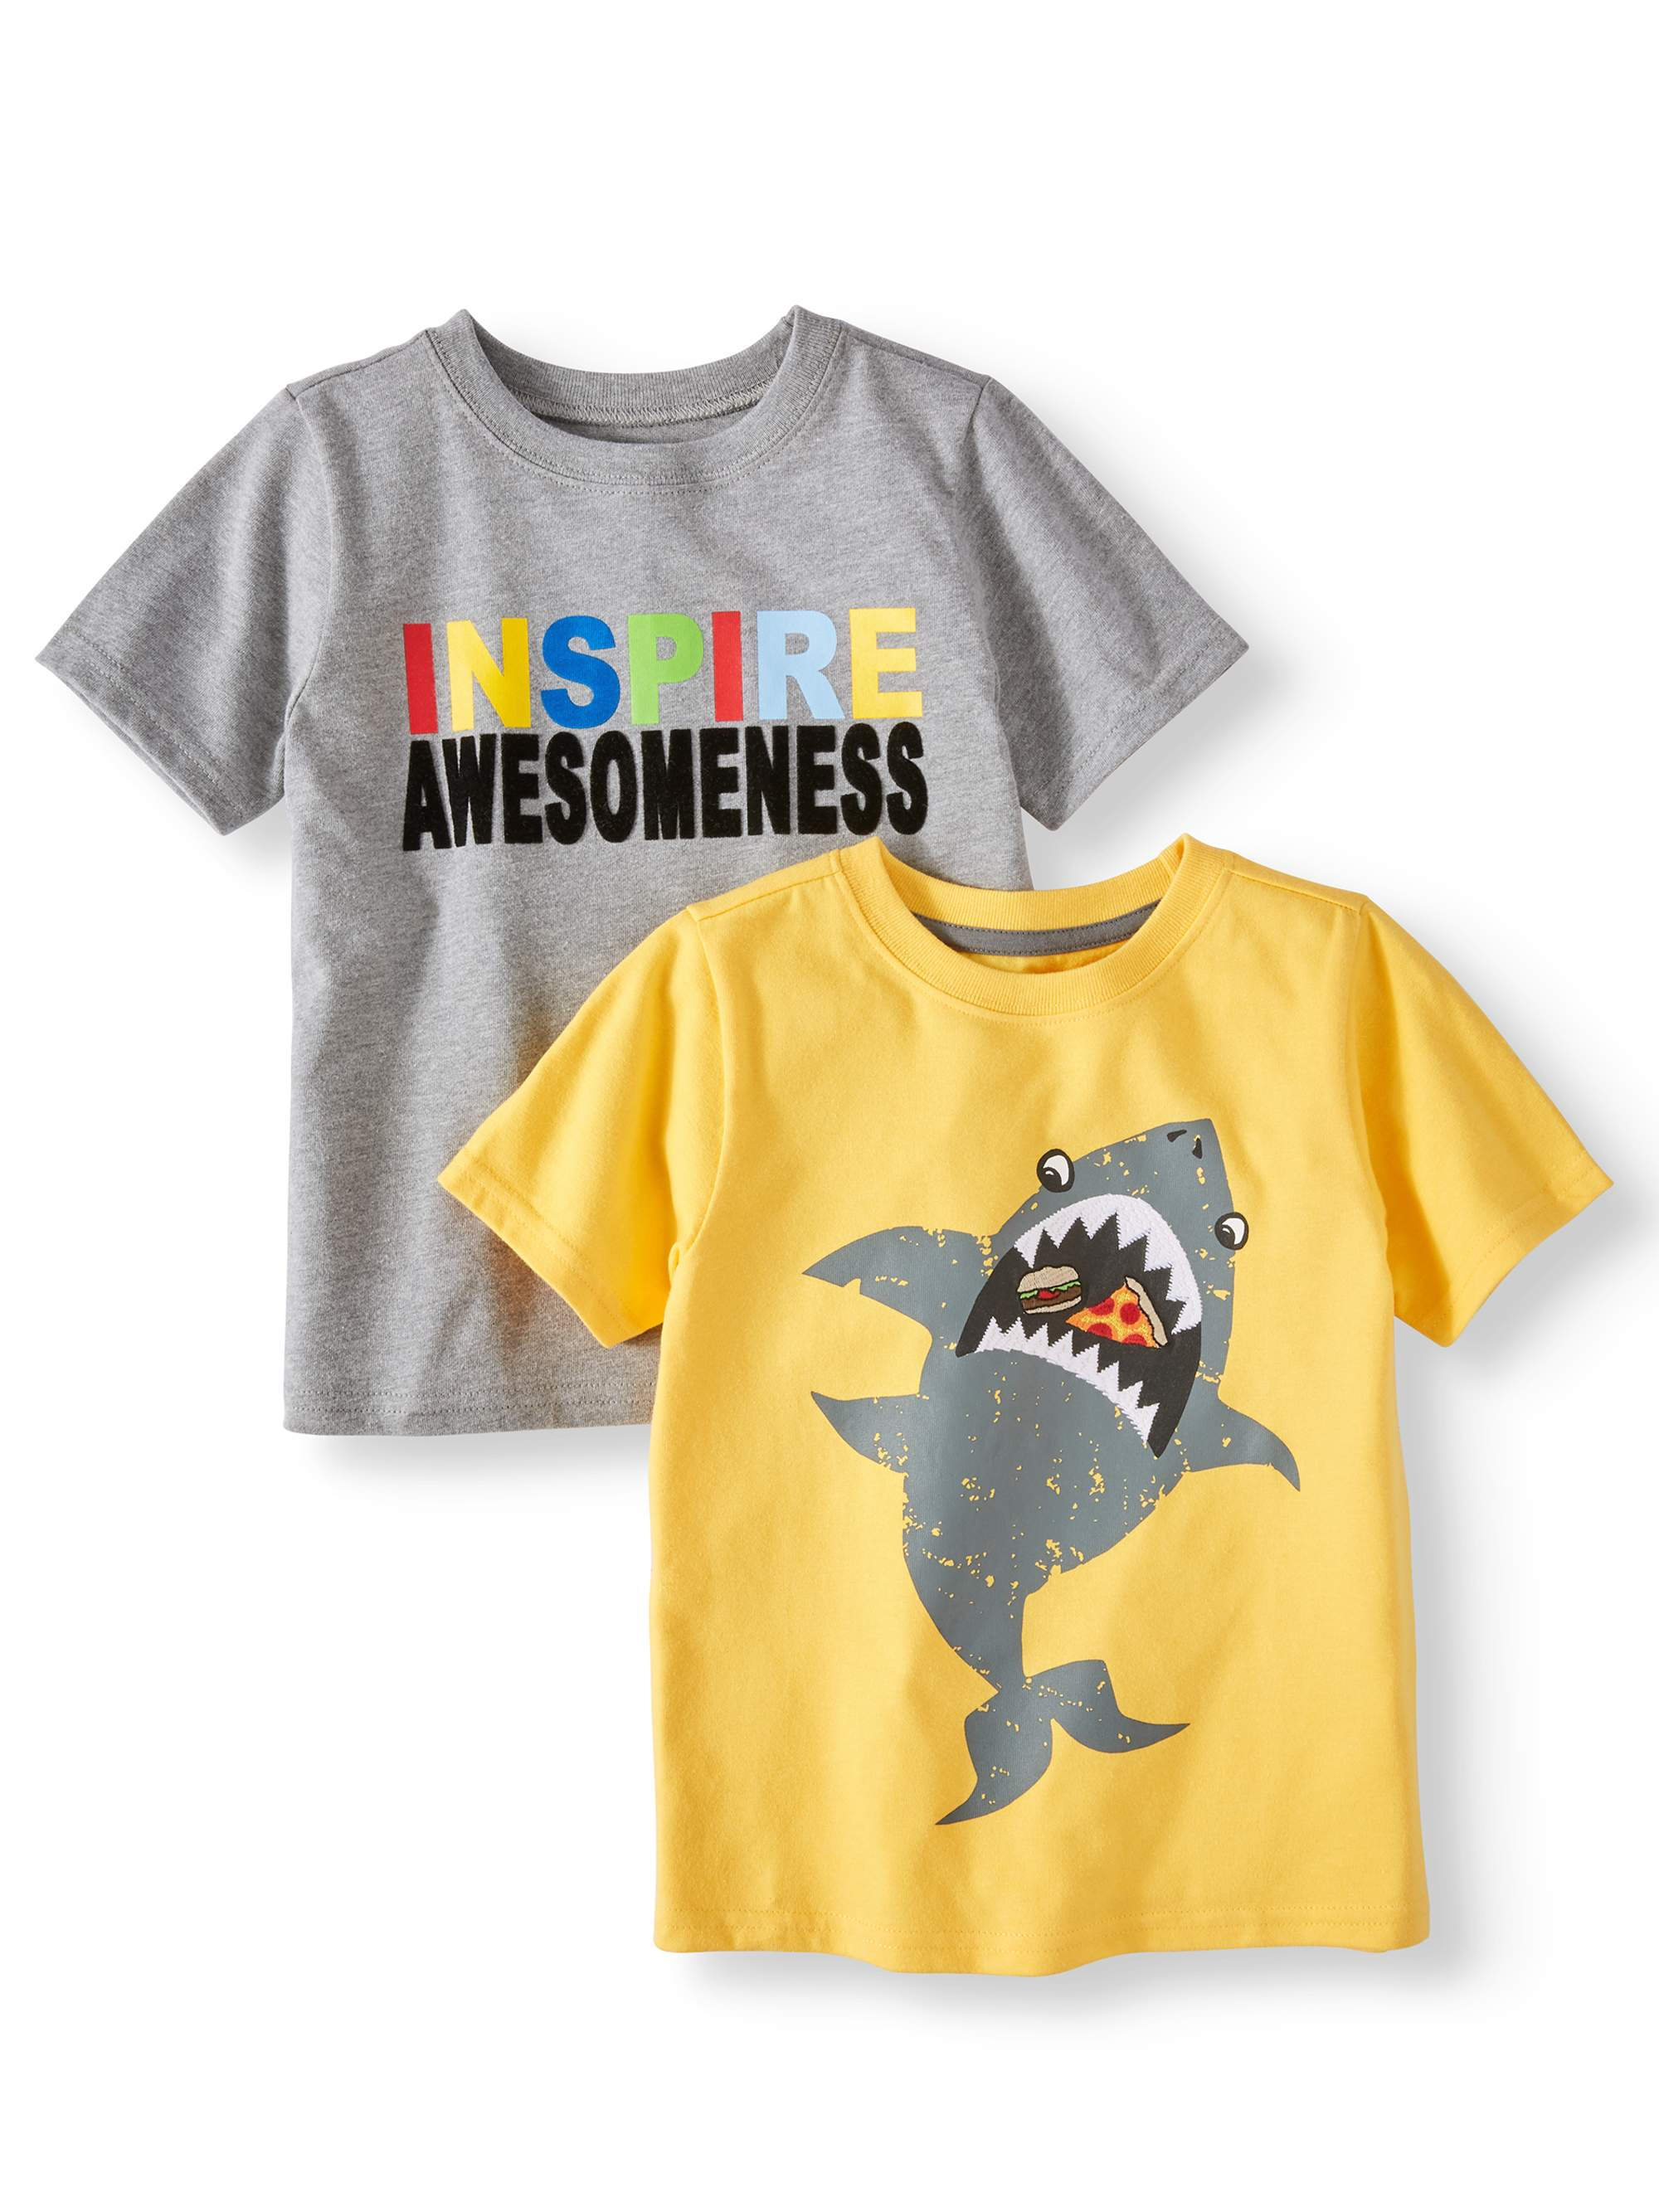 Graphic T-Shirts, 2pc Multi-Pack (Toddler Boys)